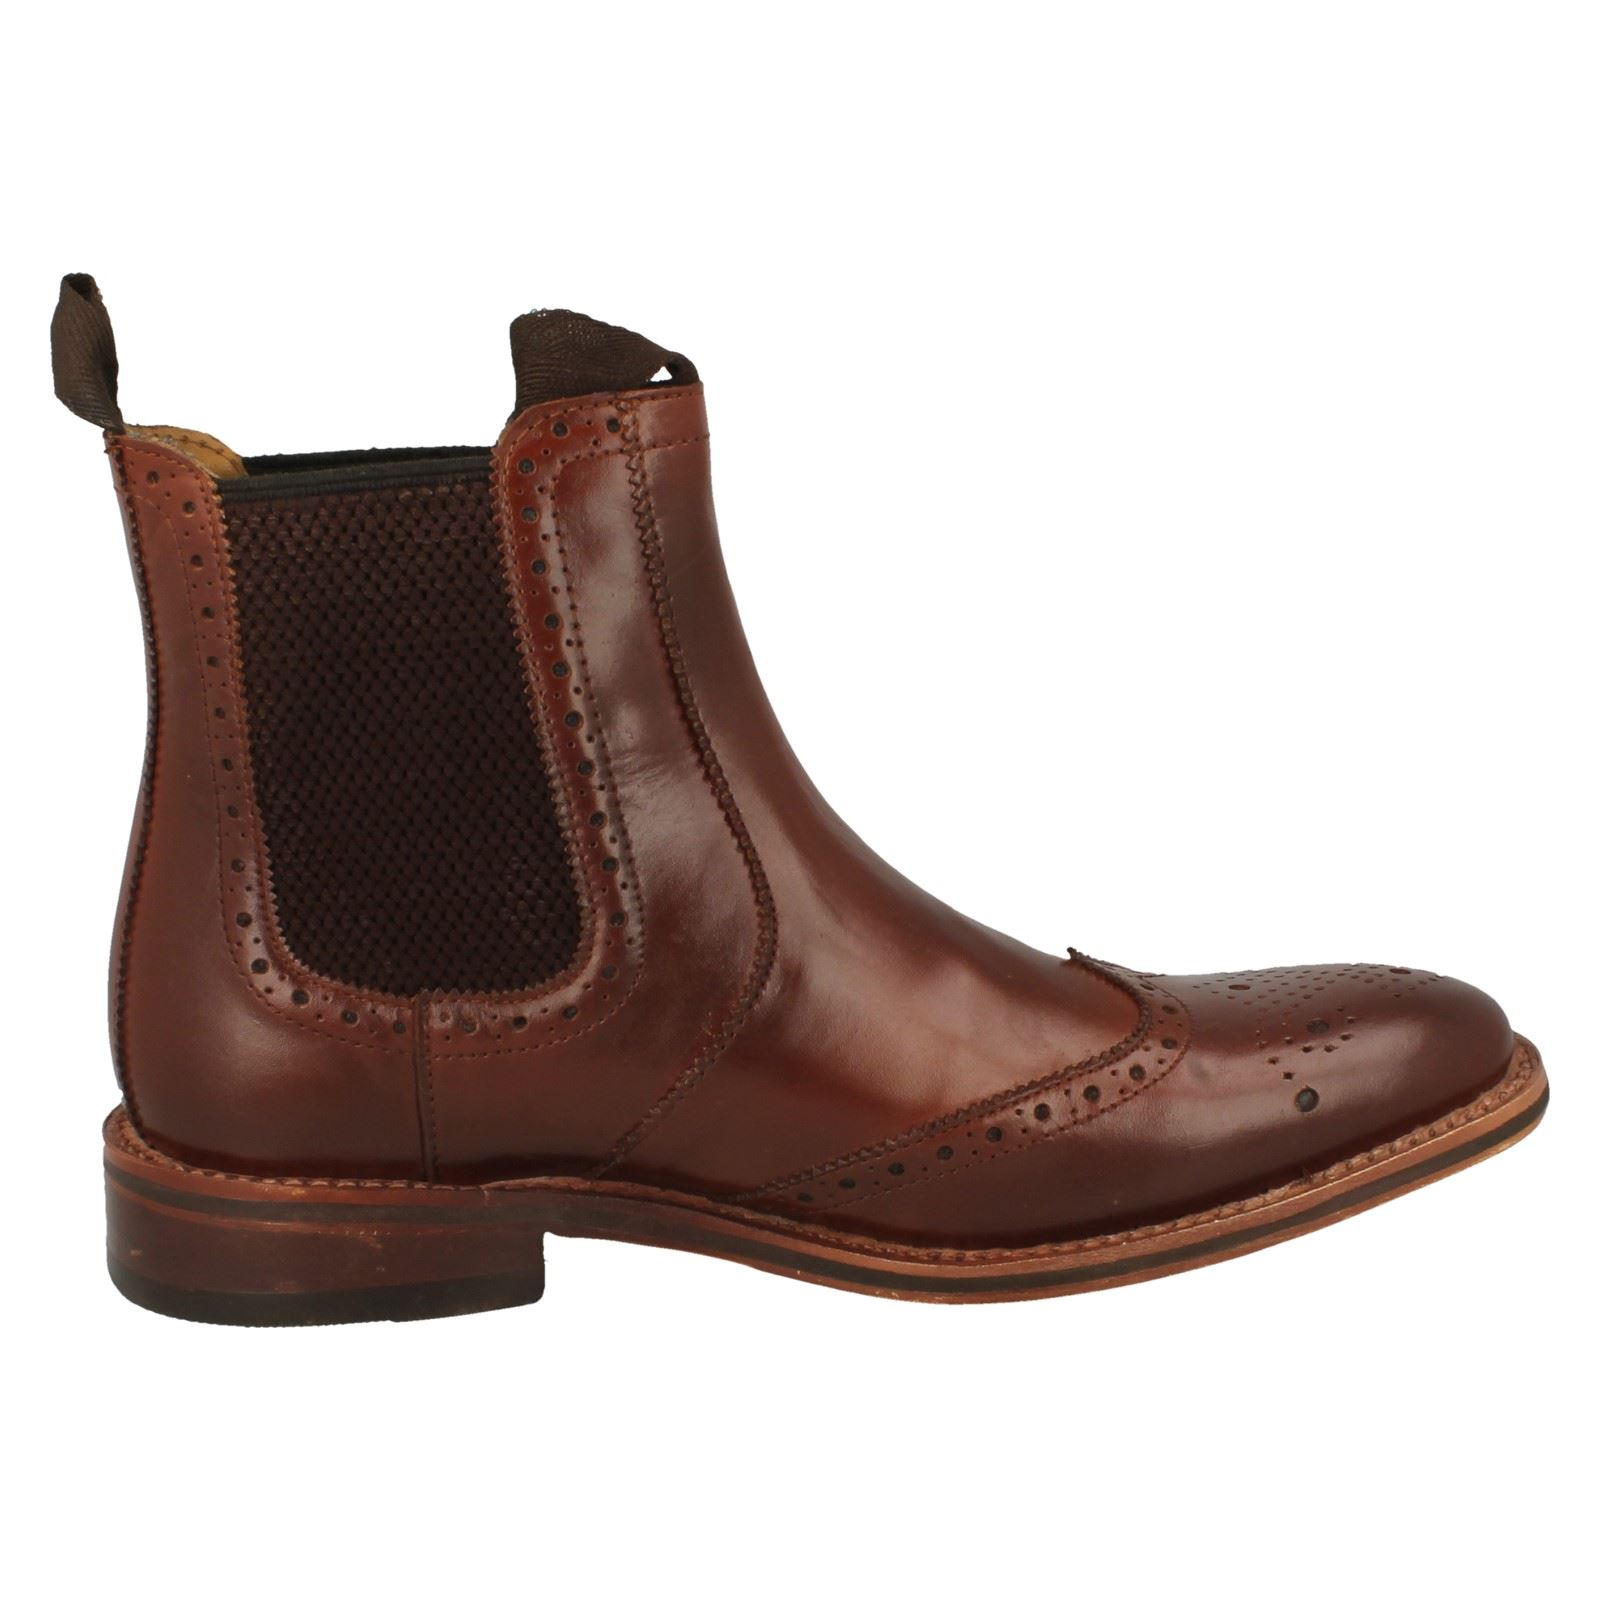 Mens-Catesby-Ankle-Boots-MCATESCW158T thumbnail 16